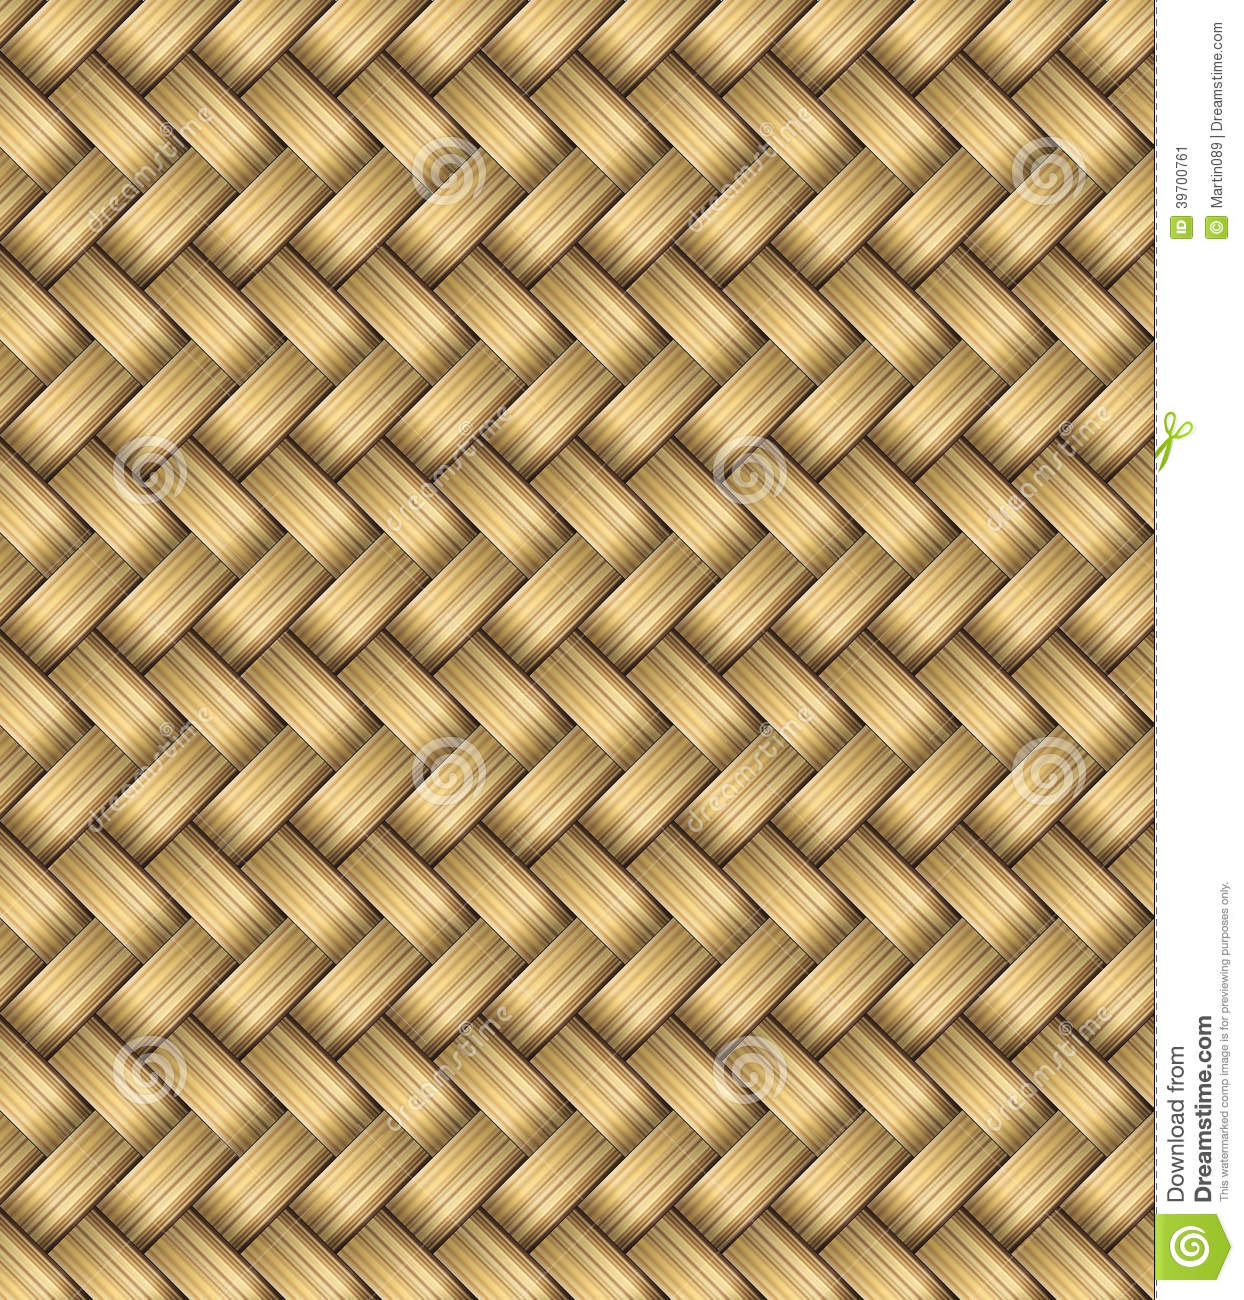 Vector Wicker Placemat Seamless Stock Illustration Image